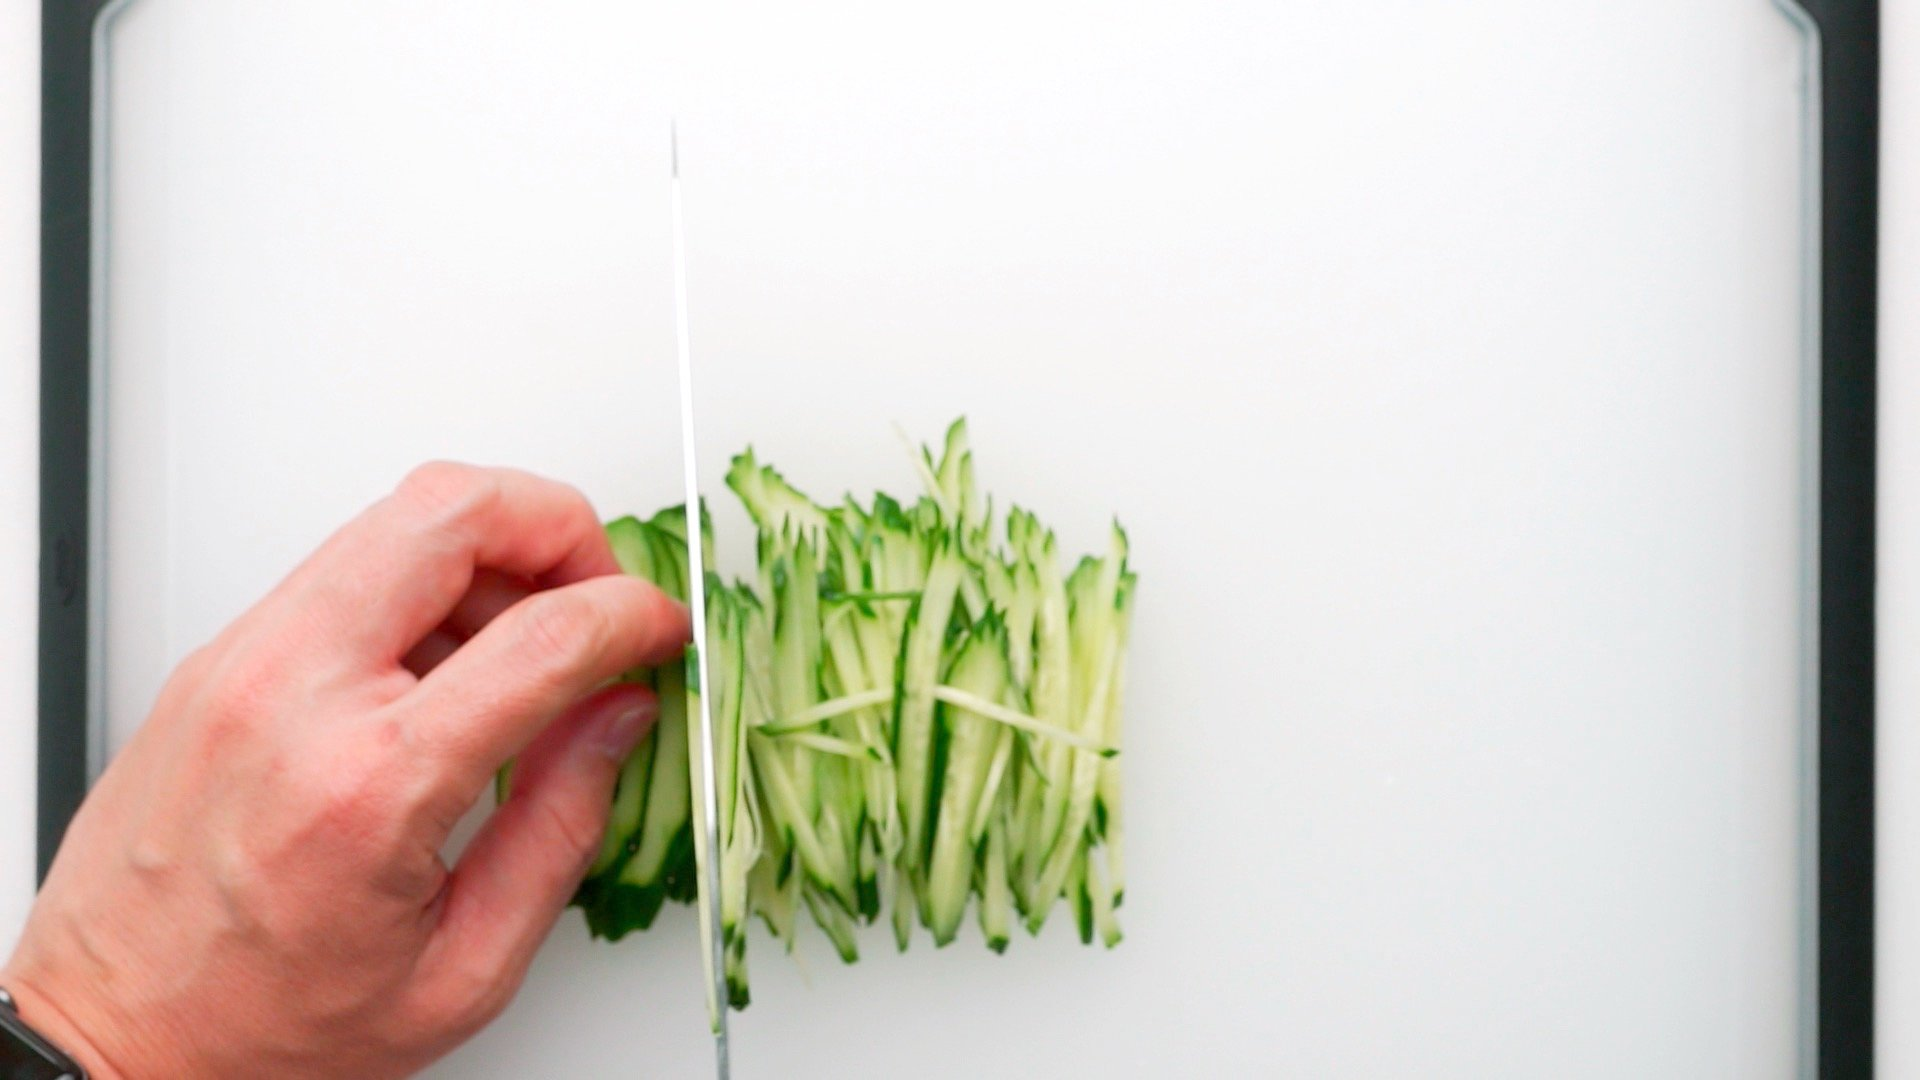 Cutting the cucumber into matchsticks for Hiyashi Chuka.